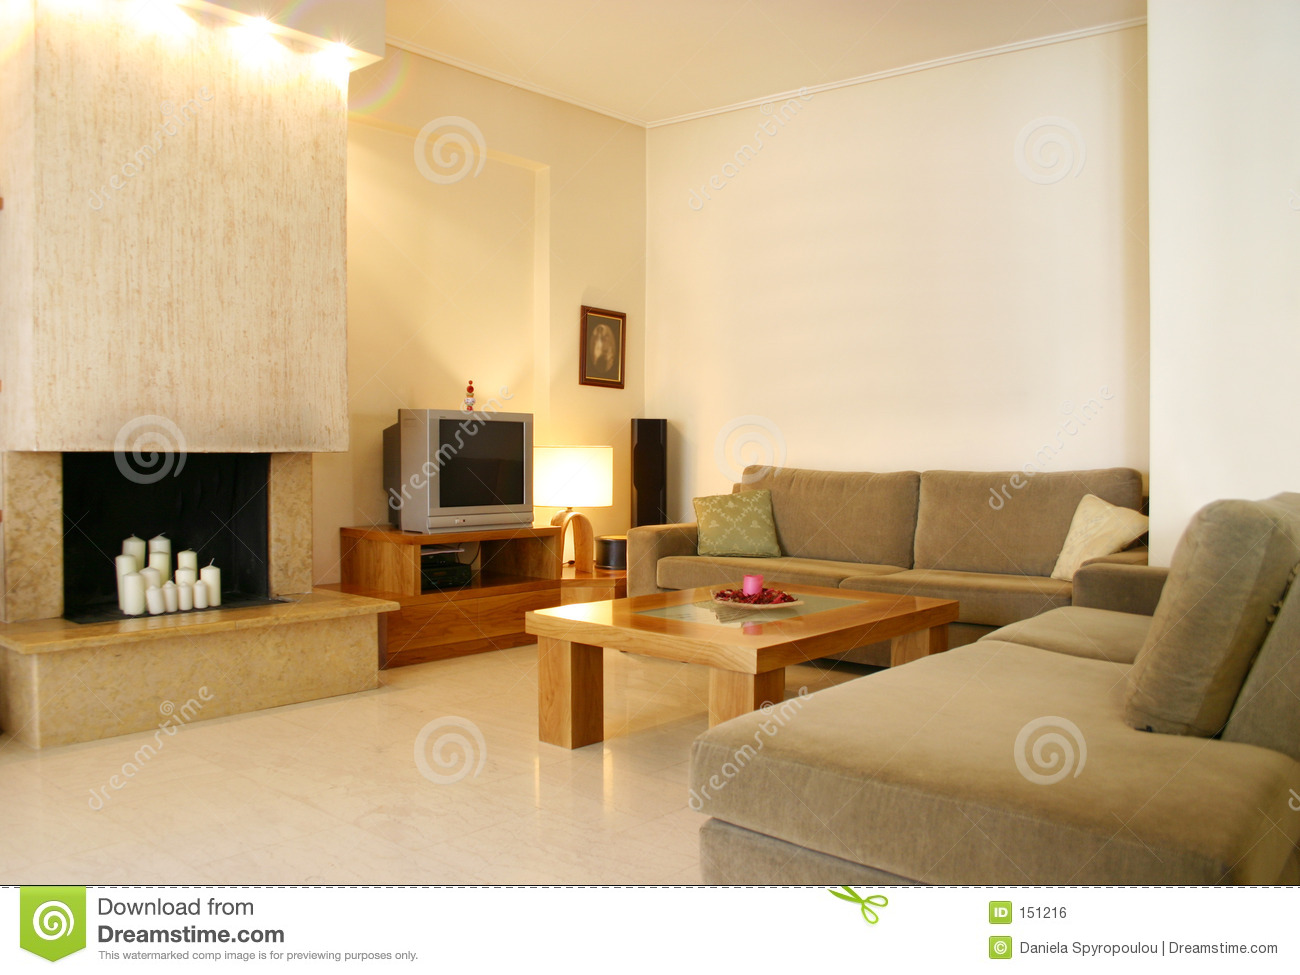 Home interior design stock photo. Image of modern ...